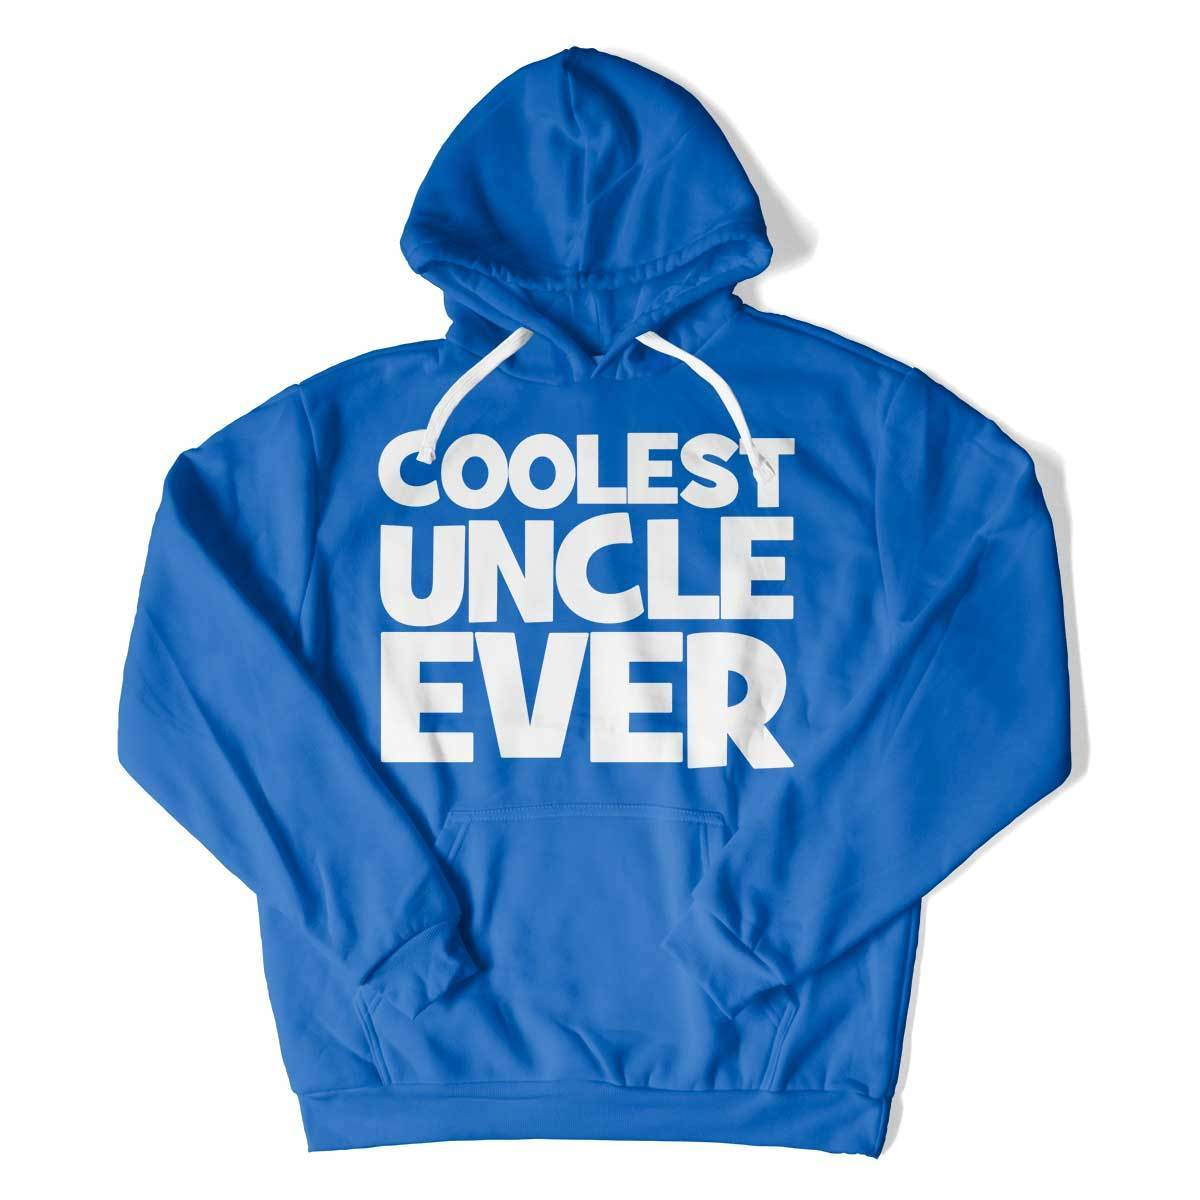 Coolest Uncle Ever Hoodie